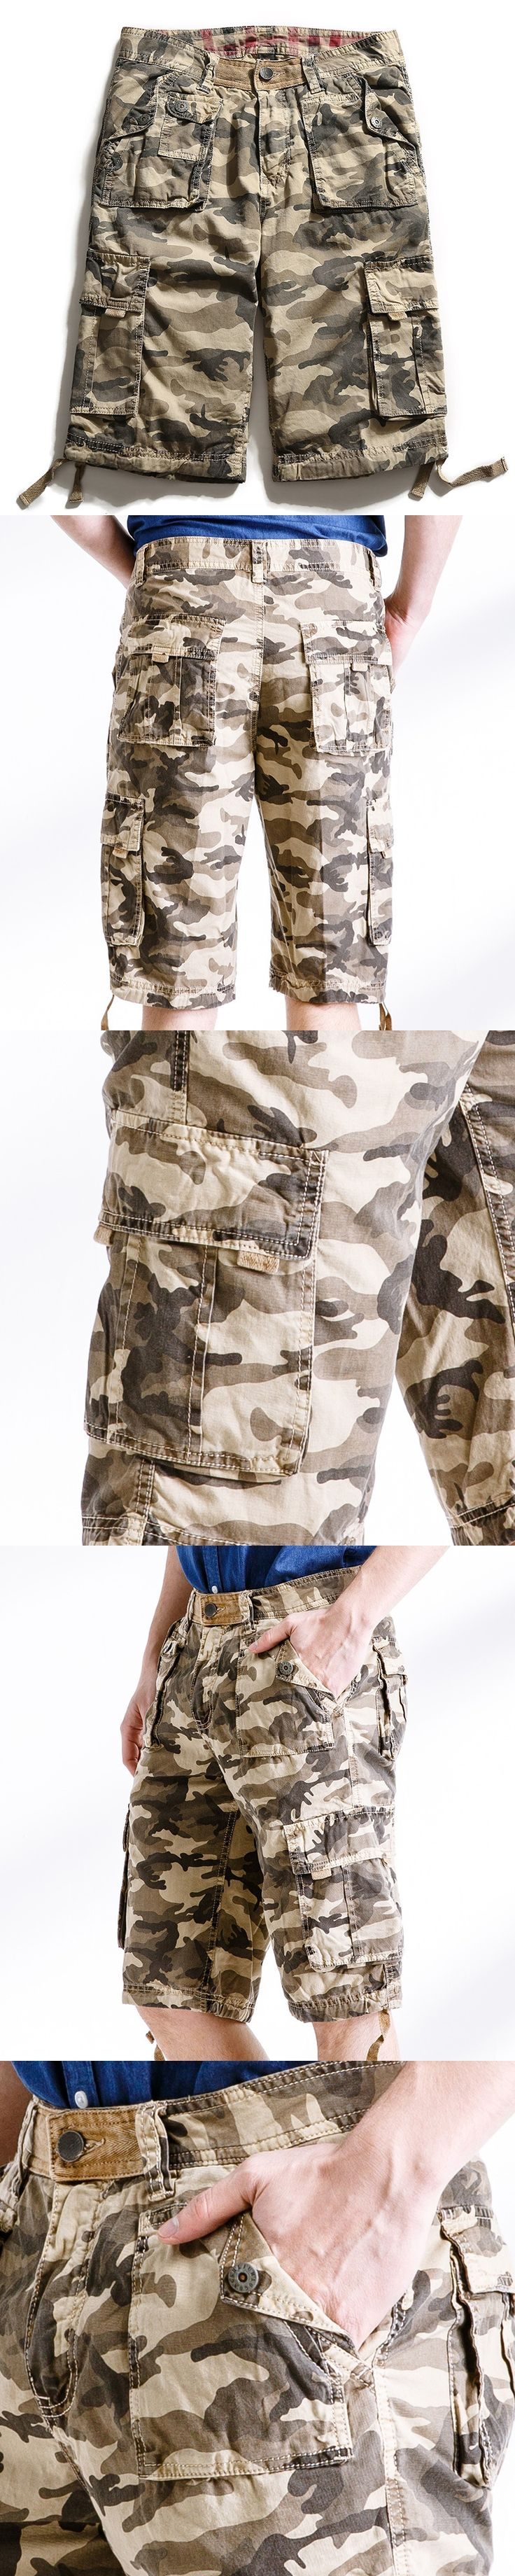 2017 Men Military Shorts Summer Mens Camouflage Army Cargo Shorts Workout Shorts Homme Casual Bermuda Trousers size 38 No belts